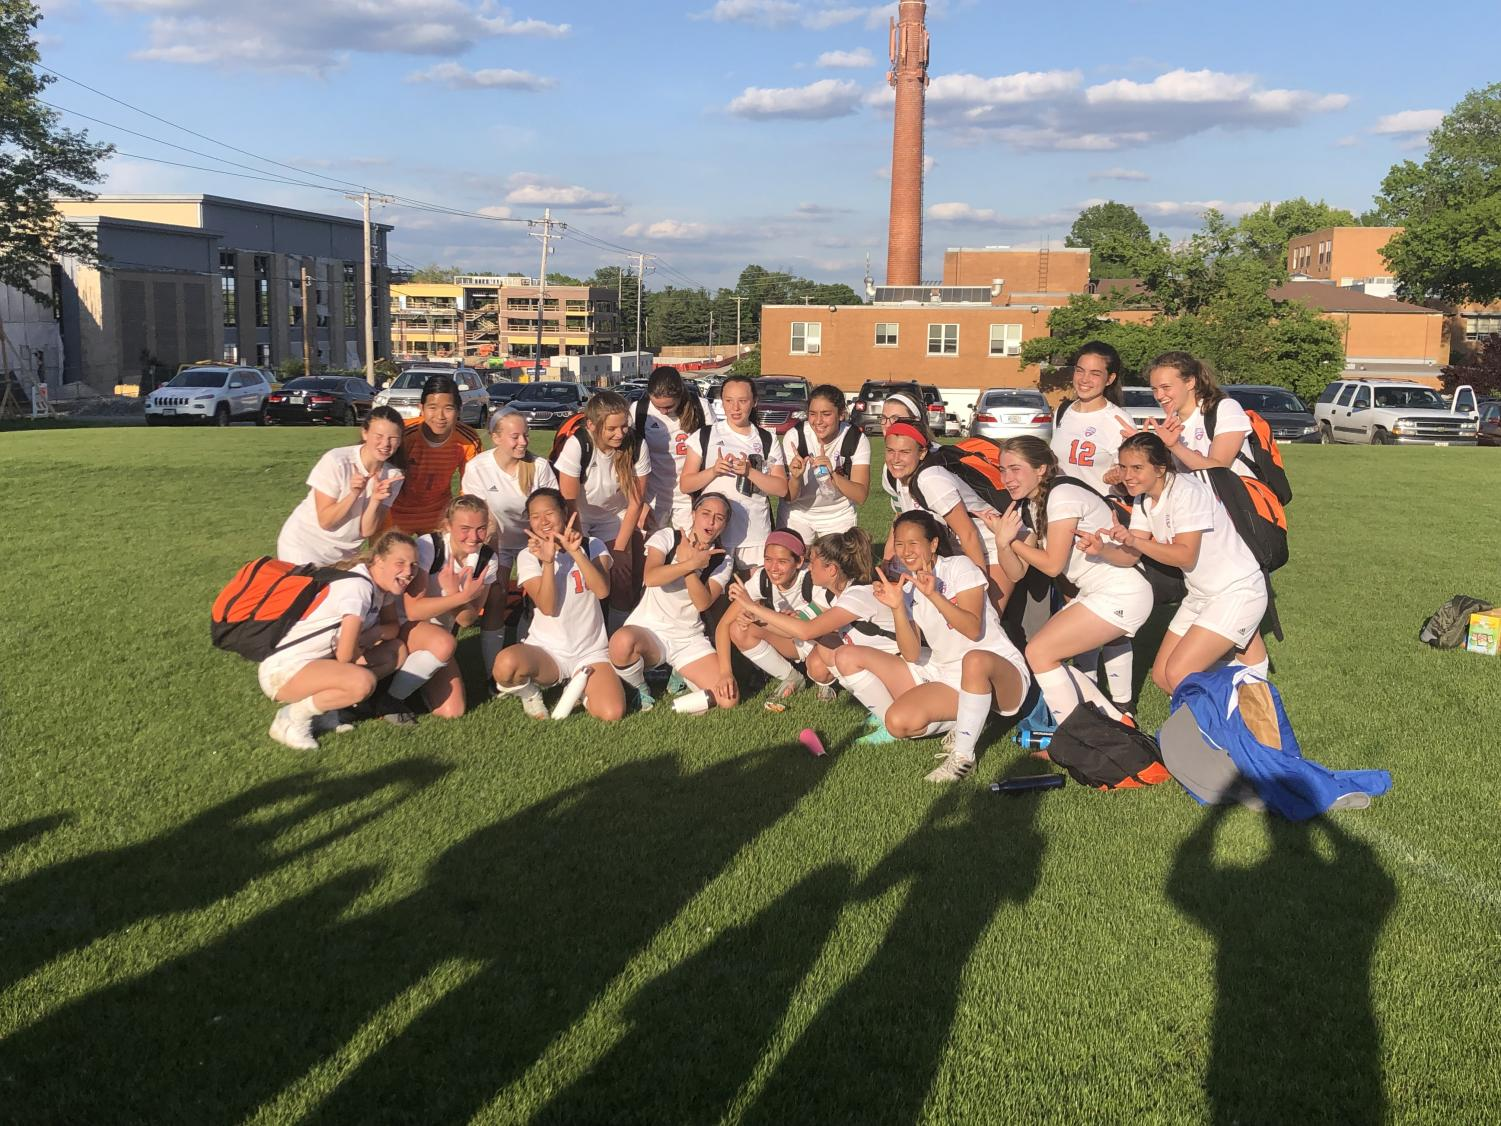 The CHS Girls' varsity soccer team beat Ladue in the Class 3 District 4 semifinal game on Monday.